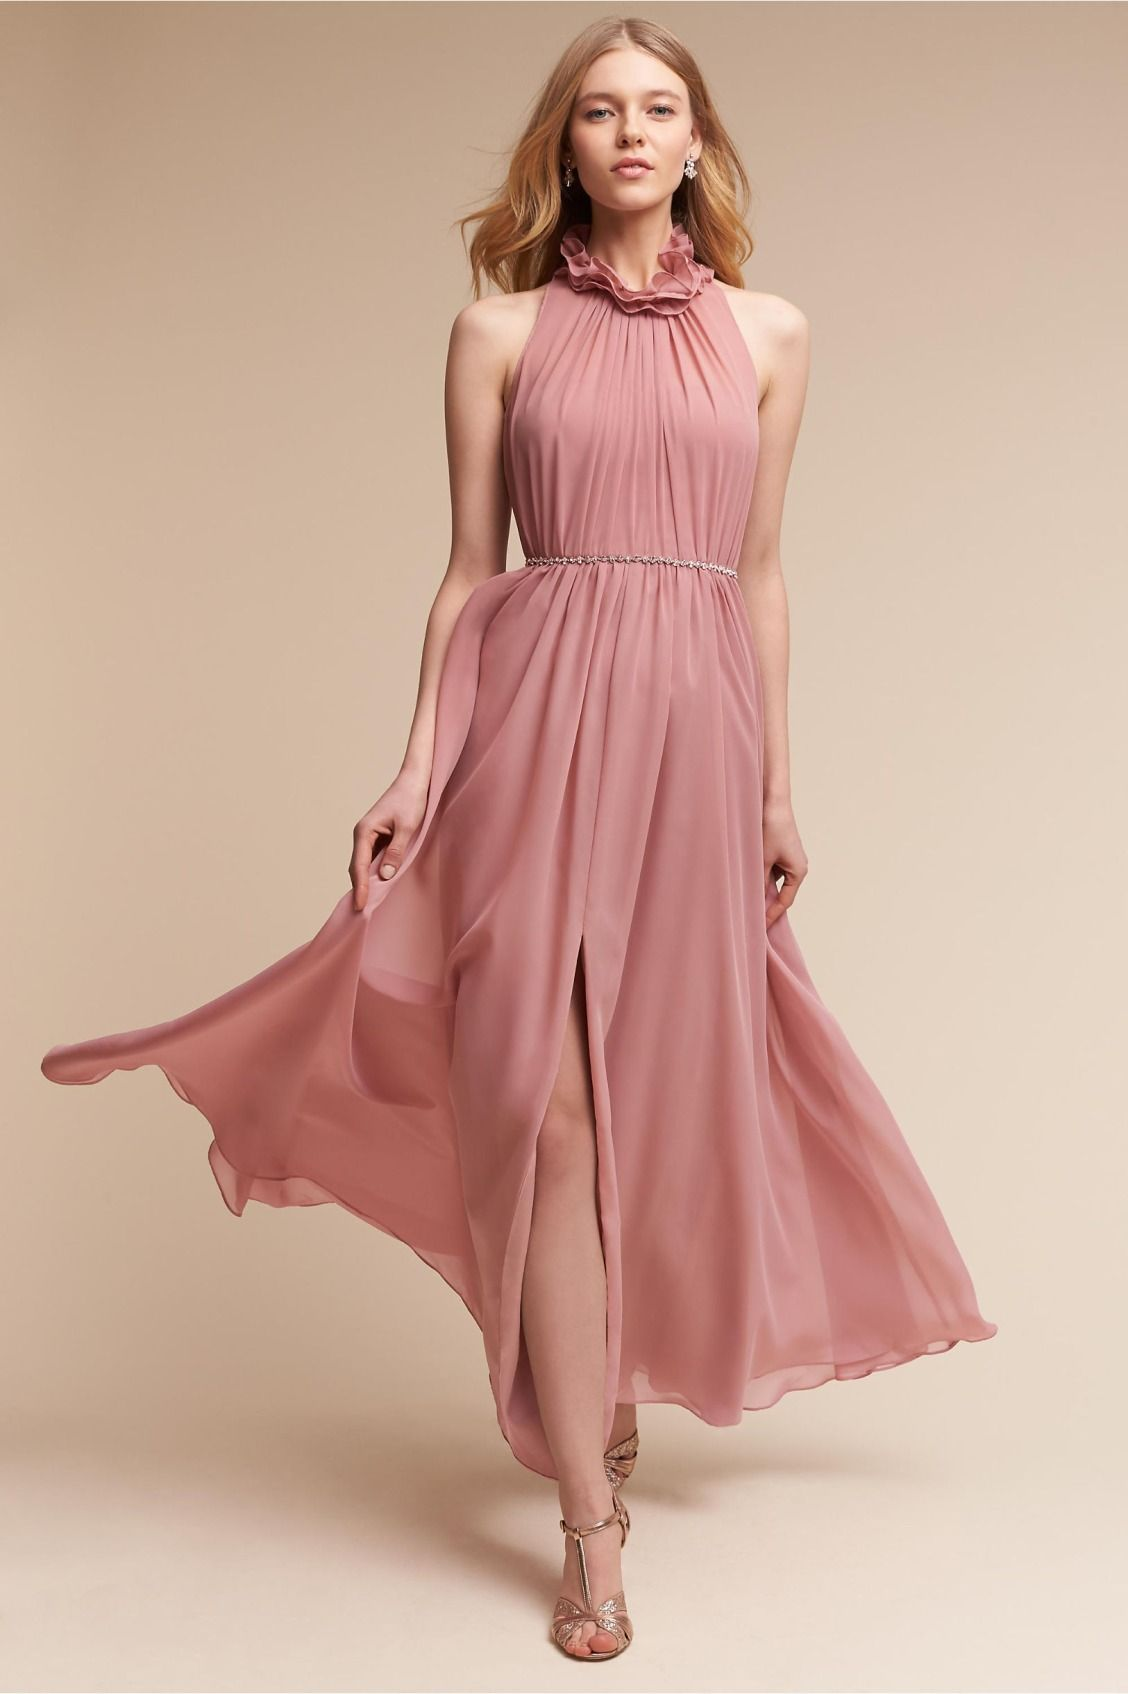 Inspired by the Victorian era | Camila Dress in Dusty Rose from ...